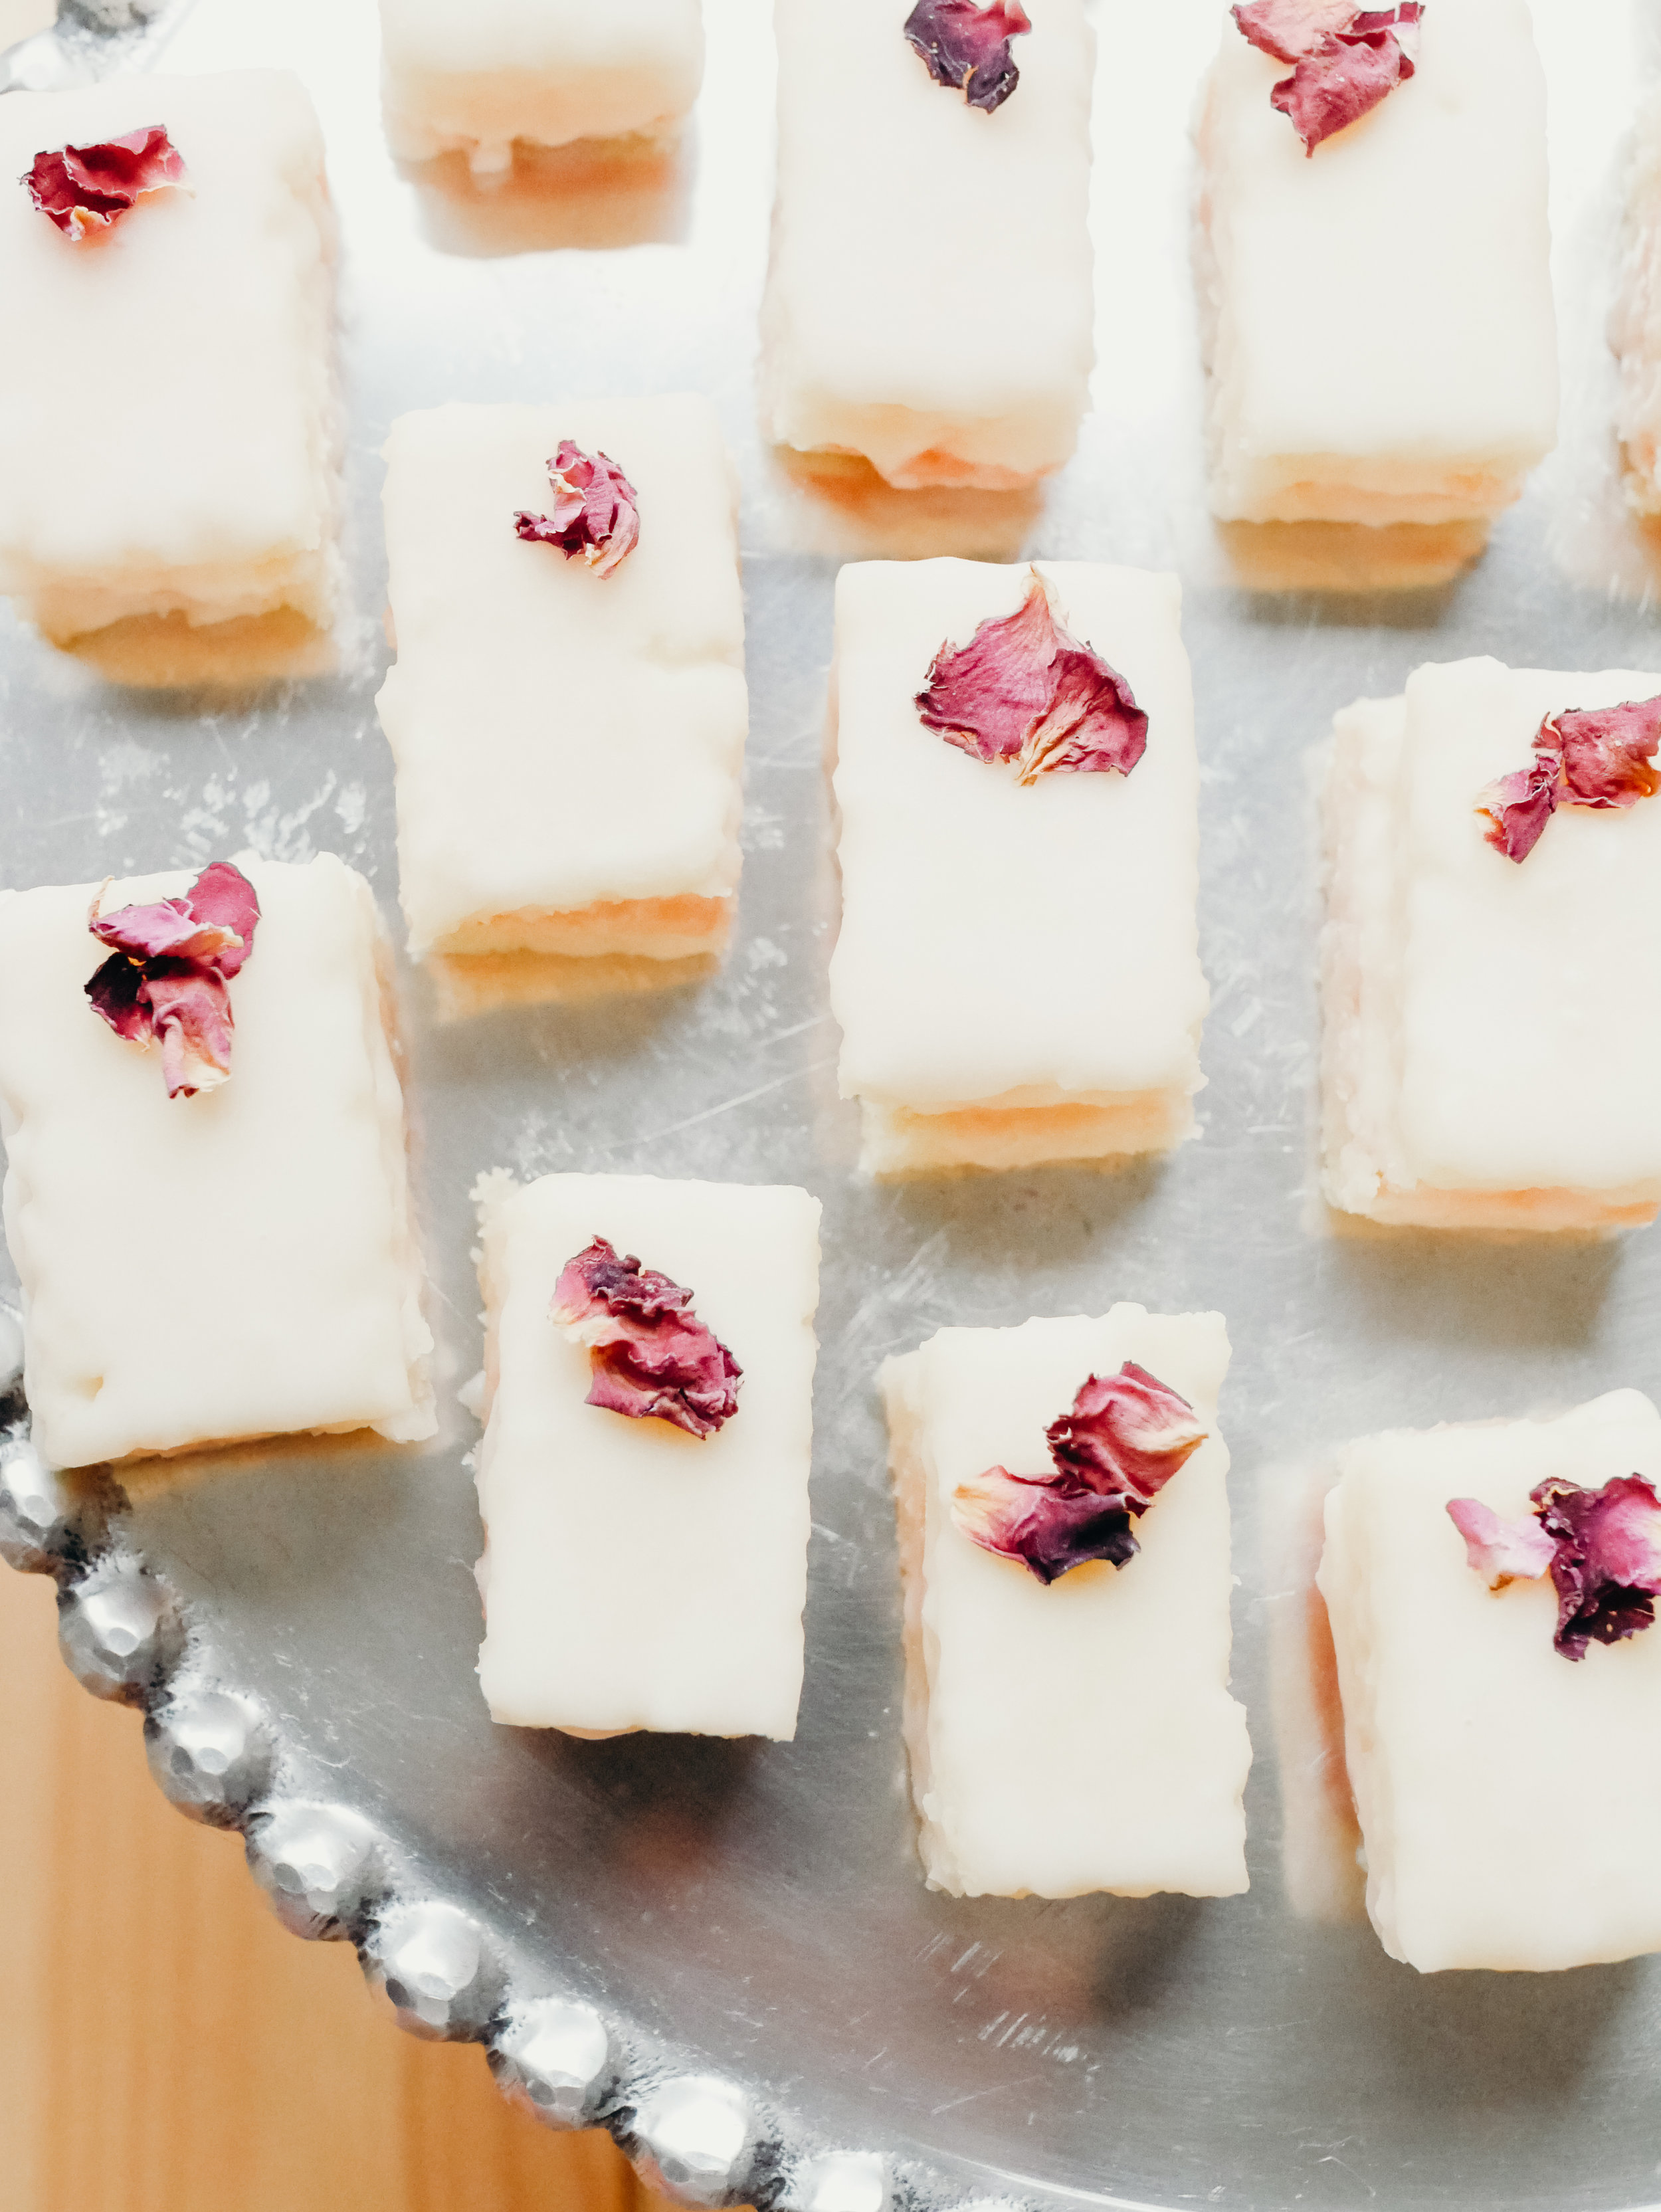 ROSE & ELDERFLOWER PETIT FOURS - Of course I turned to Sally's Baking Addiction for a simple petit fours recipe, though I did make some tweaks. Instead of making a lemon cake, I flavoured the batter with 1 tablespoon of rose water (this replaced the 3 tablespoons of lemon juice in the recipe). Her step-by-step instructions and corresponding video were really helpful, but I decided to make the petit fours with just a single layer of filling, spreading rose and elderflower curd on one side and the vanilla buttercream from the recipe on the other side. I wish I had measured out the cuts I made so they were more uniform, but they turned out okay. I used her Perfect Vanilla Icing recipe for the icing, colouring it with just a touch of pink food colouring. I scaled up the recipe to use 5 cups of confectioner's sugar and kept it vanilla so the rose wasn't too overpowering. I let the first coating dry before adding a second to help the colour pop on the cakes more. I topped them with edible rose petals before the second coat of icing was dry.